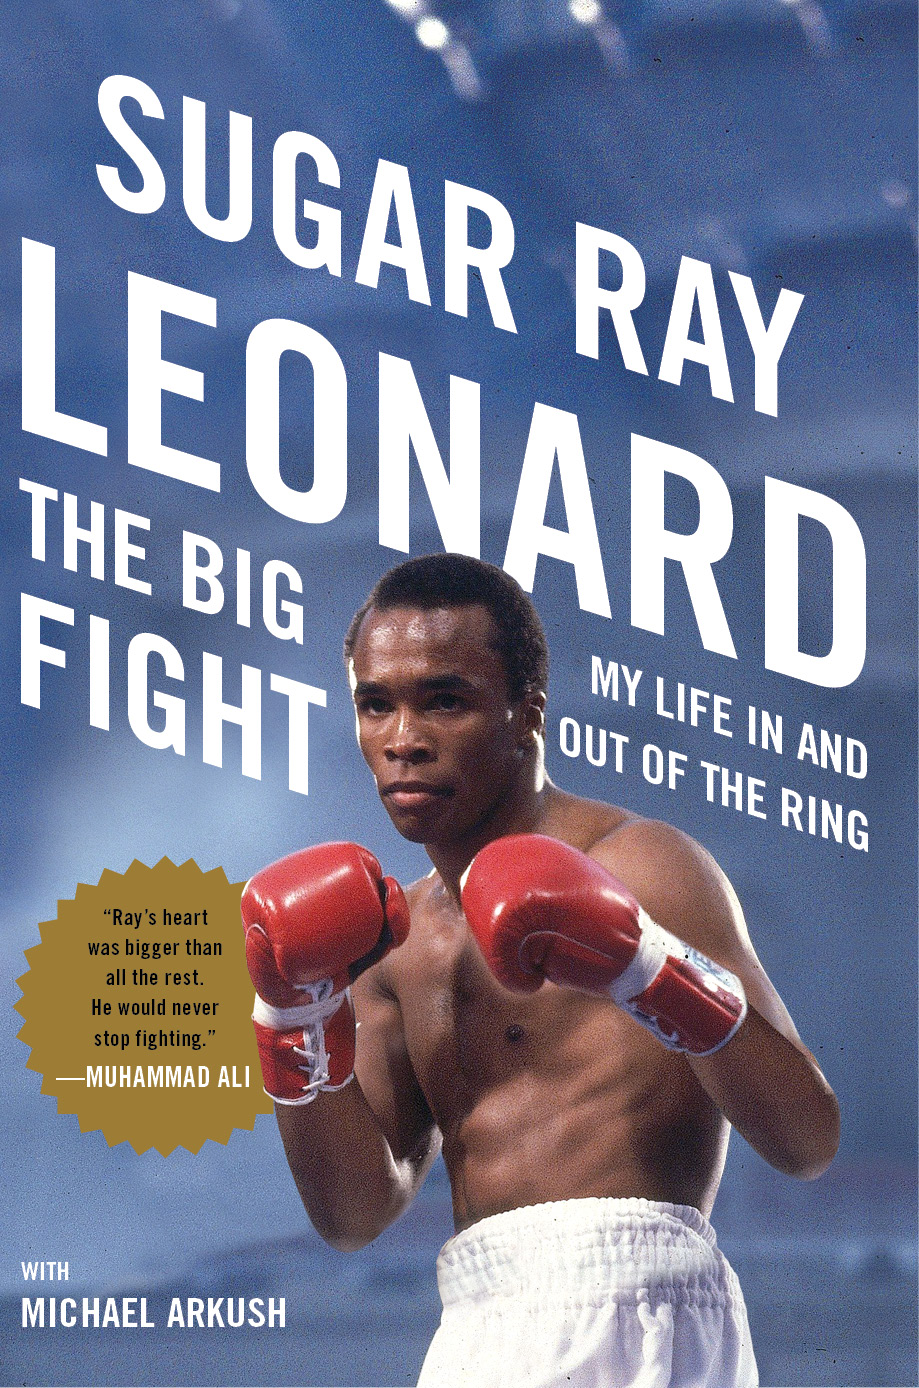 By Dennis J. Freeman Sugar Ray Leonard is one of the all-time greats in boxing. His fights and triumphs are...